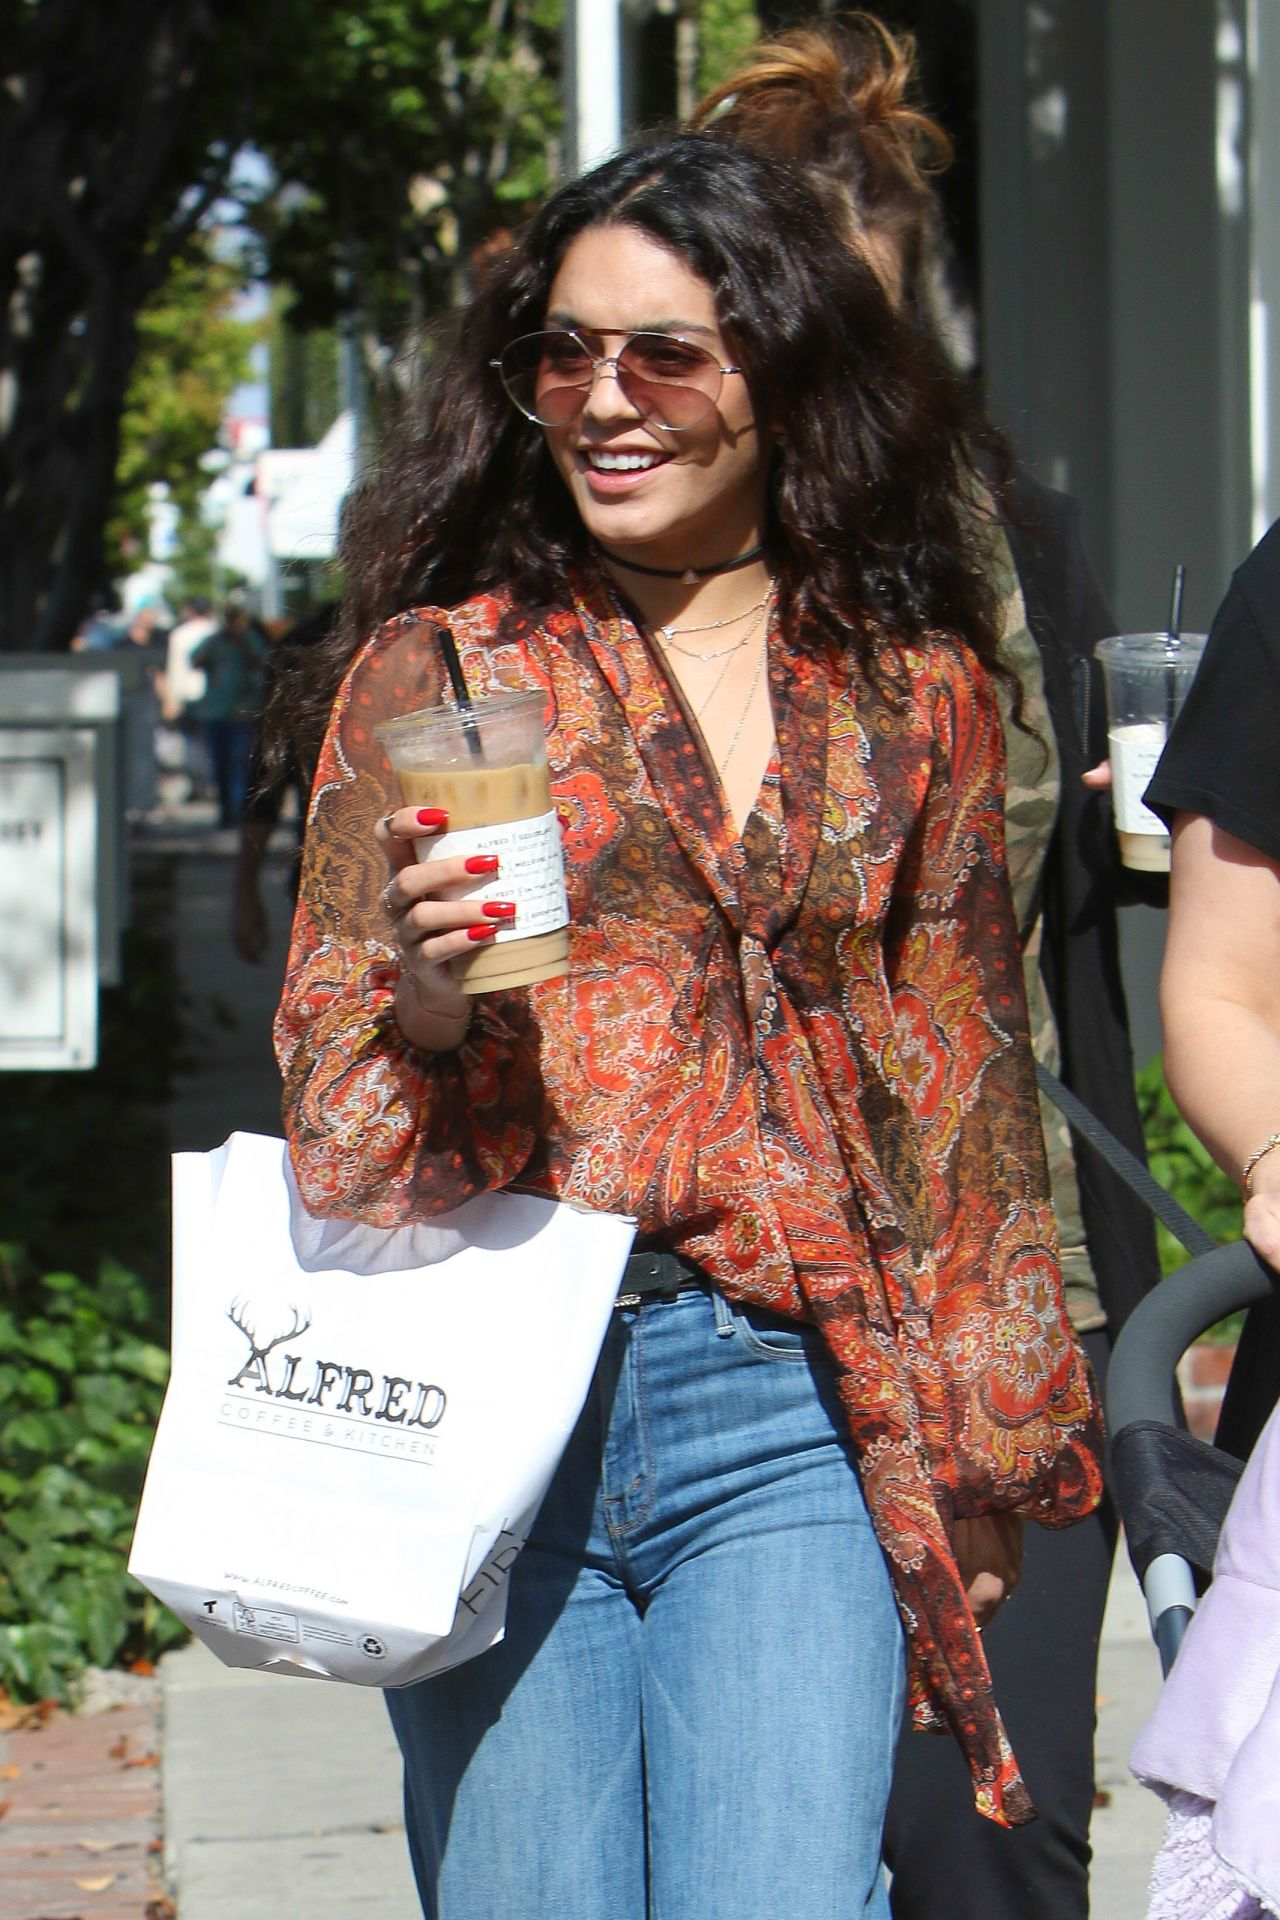 Vanessa Hudgens Urban Style Stops For Coffee At Alfred Coffee On Melrose Place In West